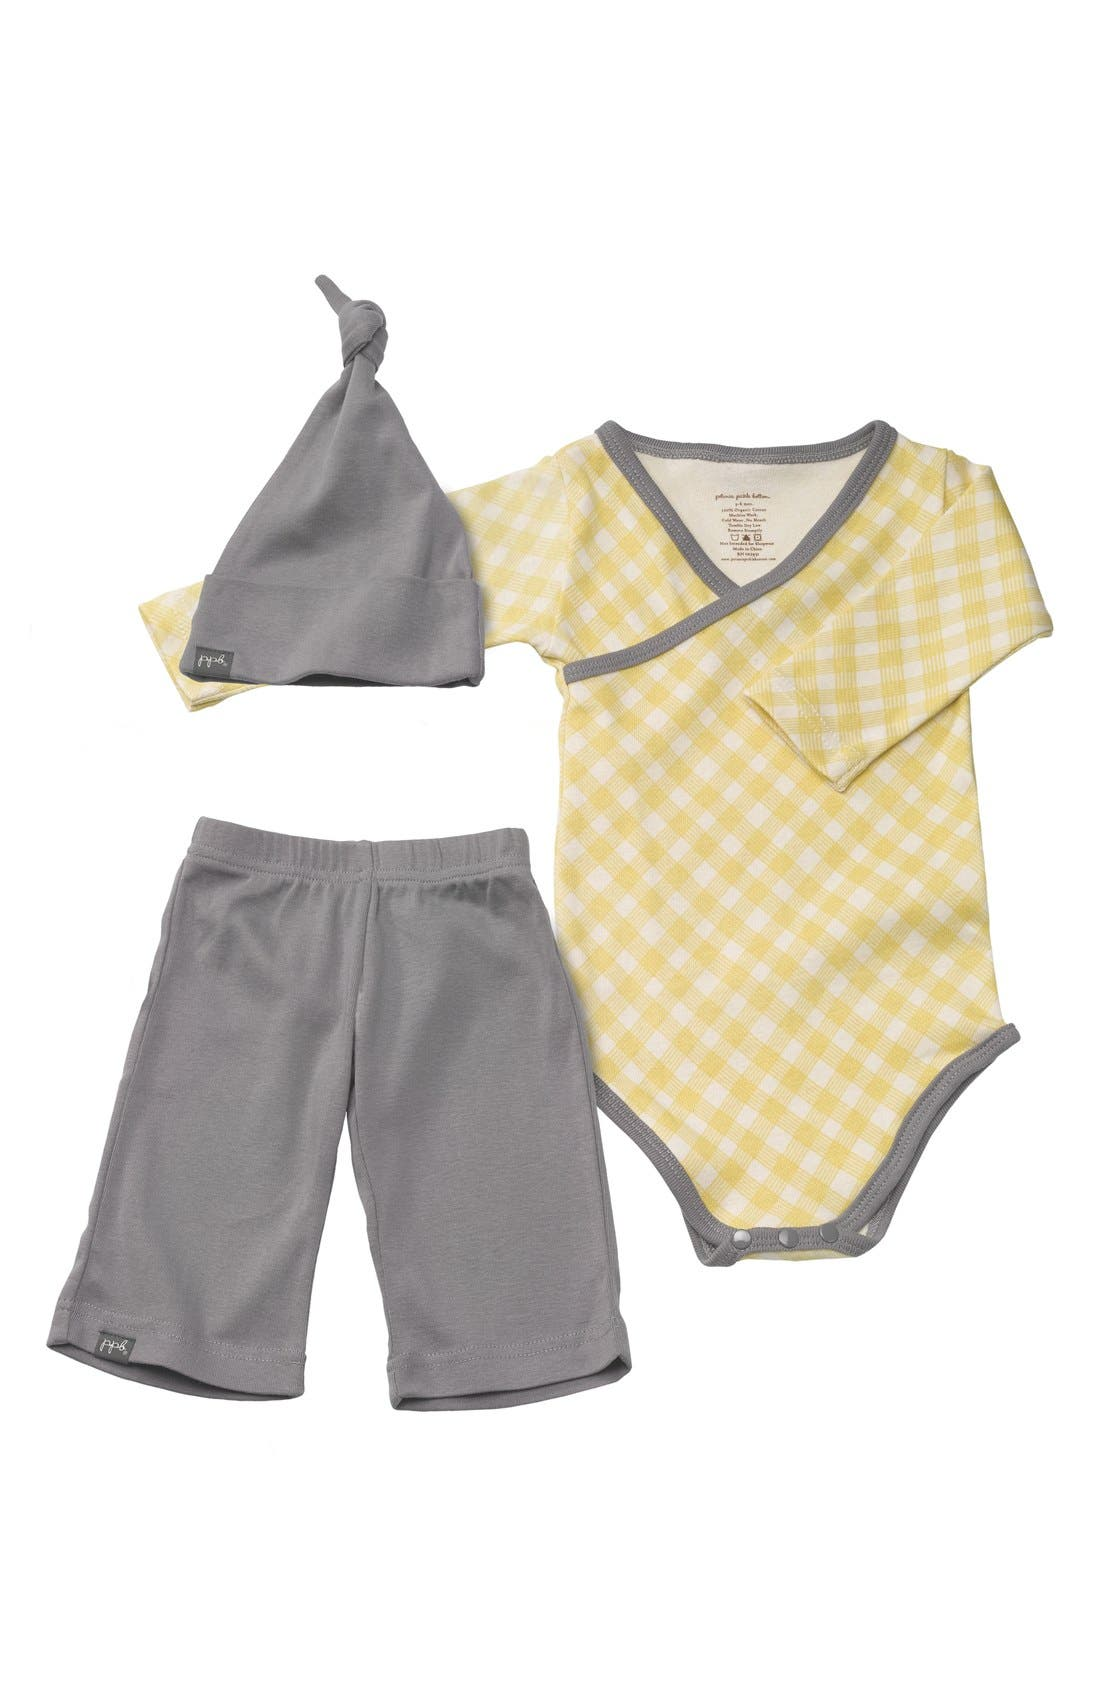 Alternate Image 1 Selected - Petunia Pickle Bottom 'Social' Organic Cotton Bodysuit, Pants & Hat Set (Baby)